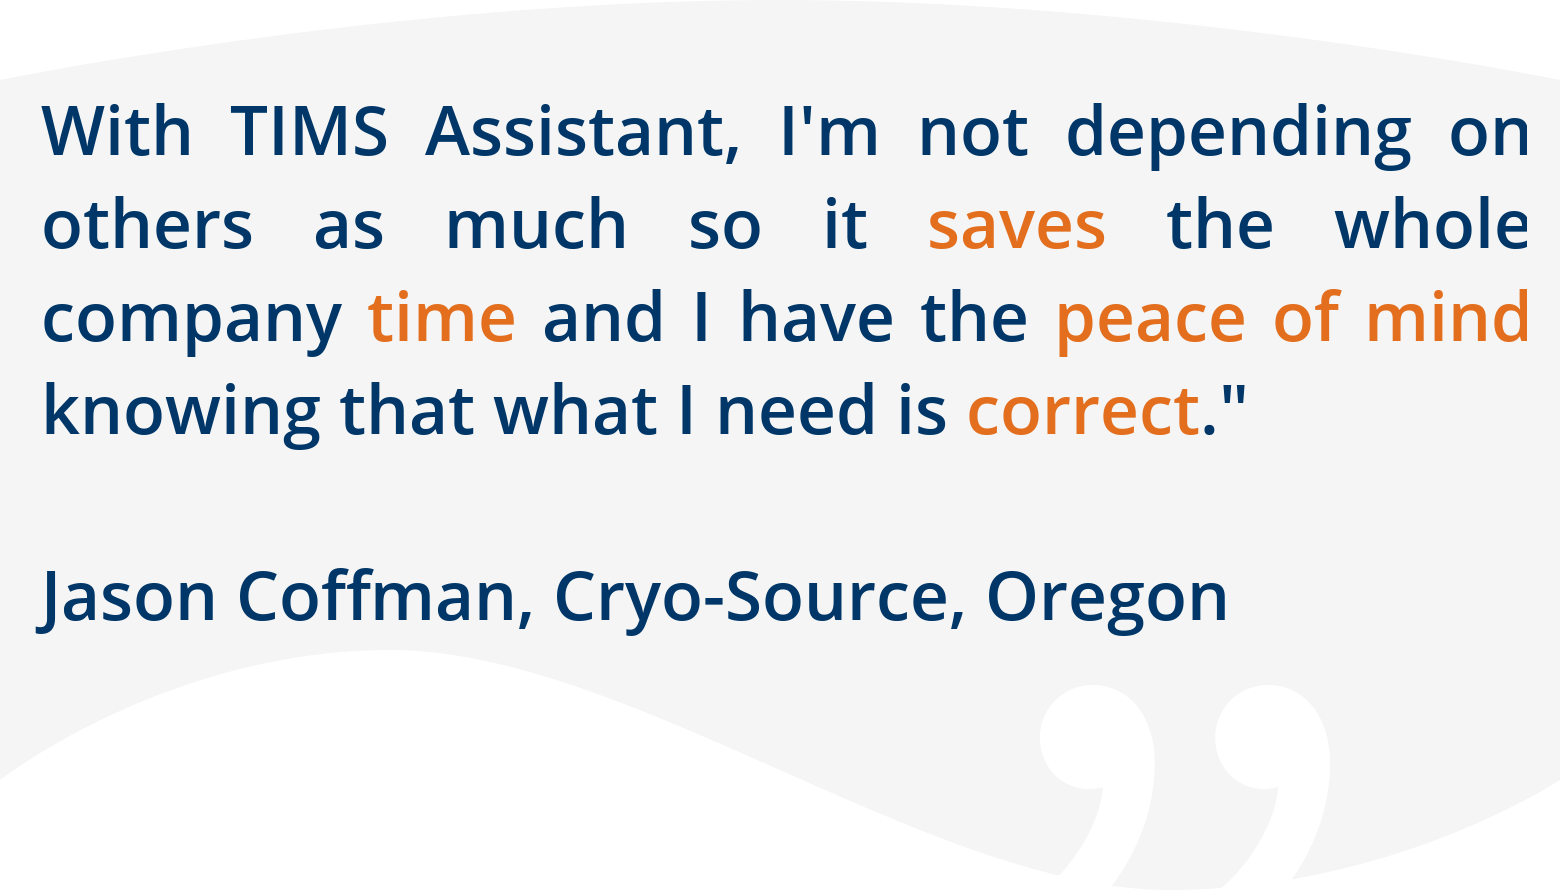 TIMS-Assistant-Cryo-Source-Jason-Coffman-March-2019-bg-with-quote